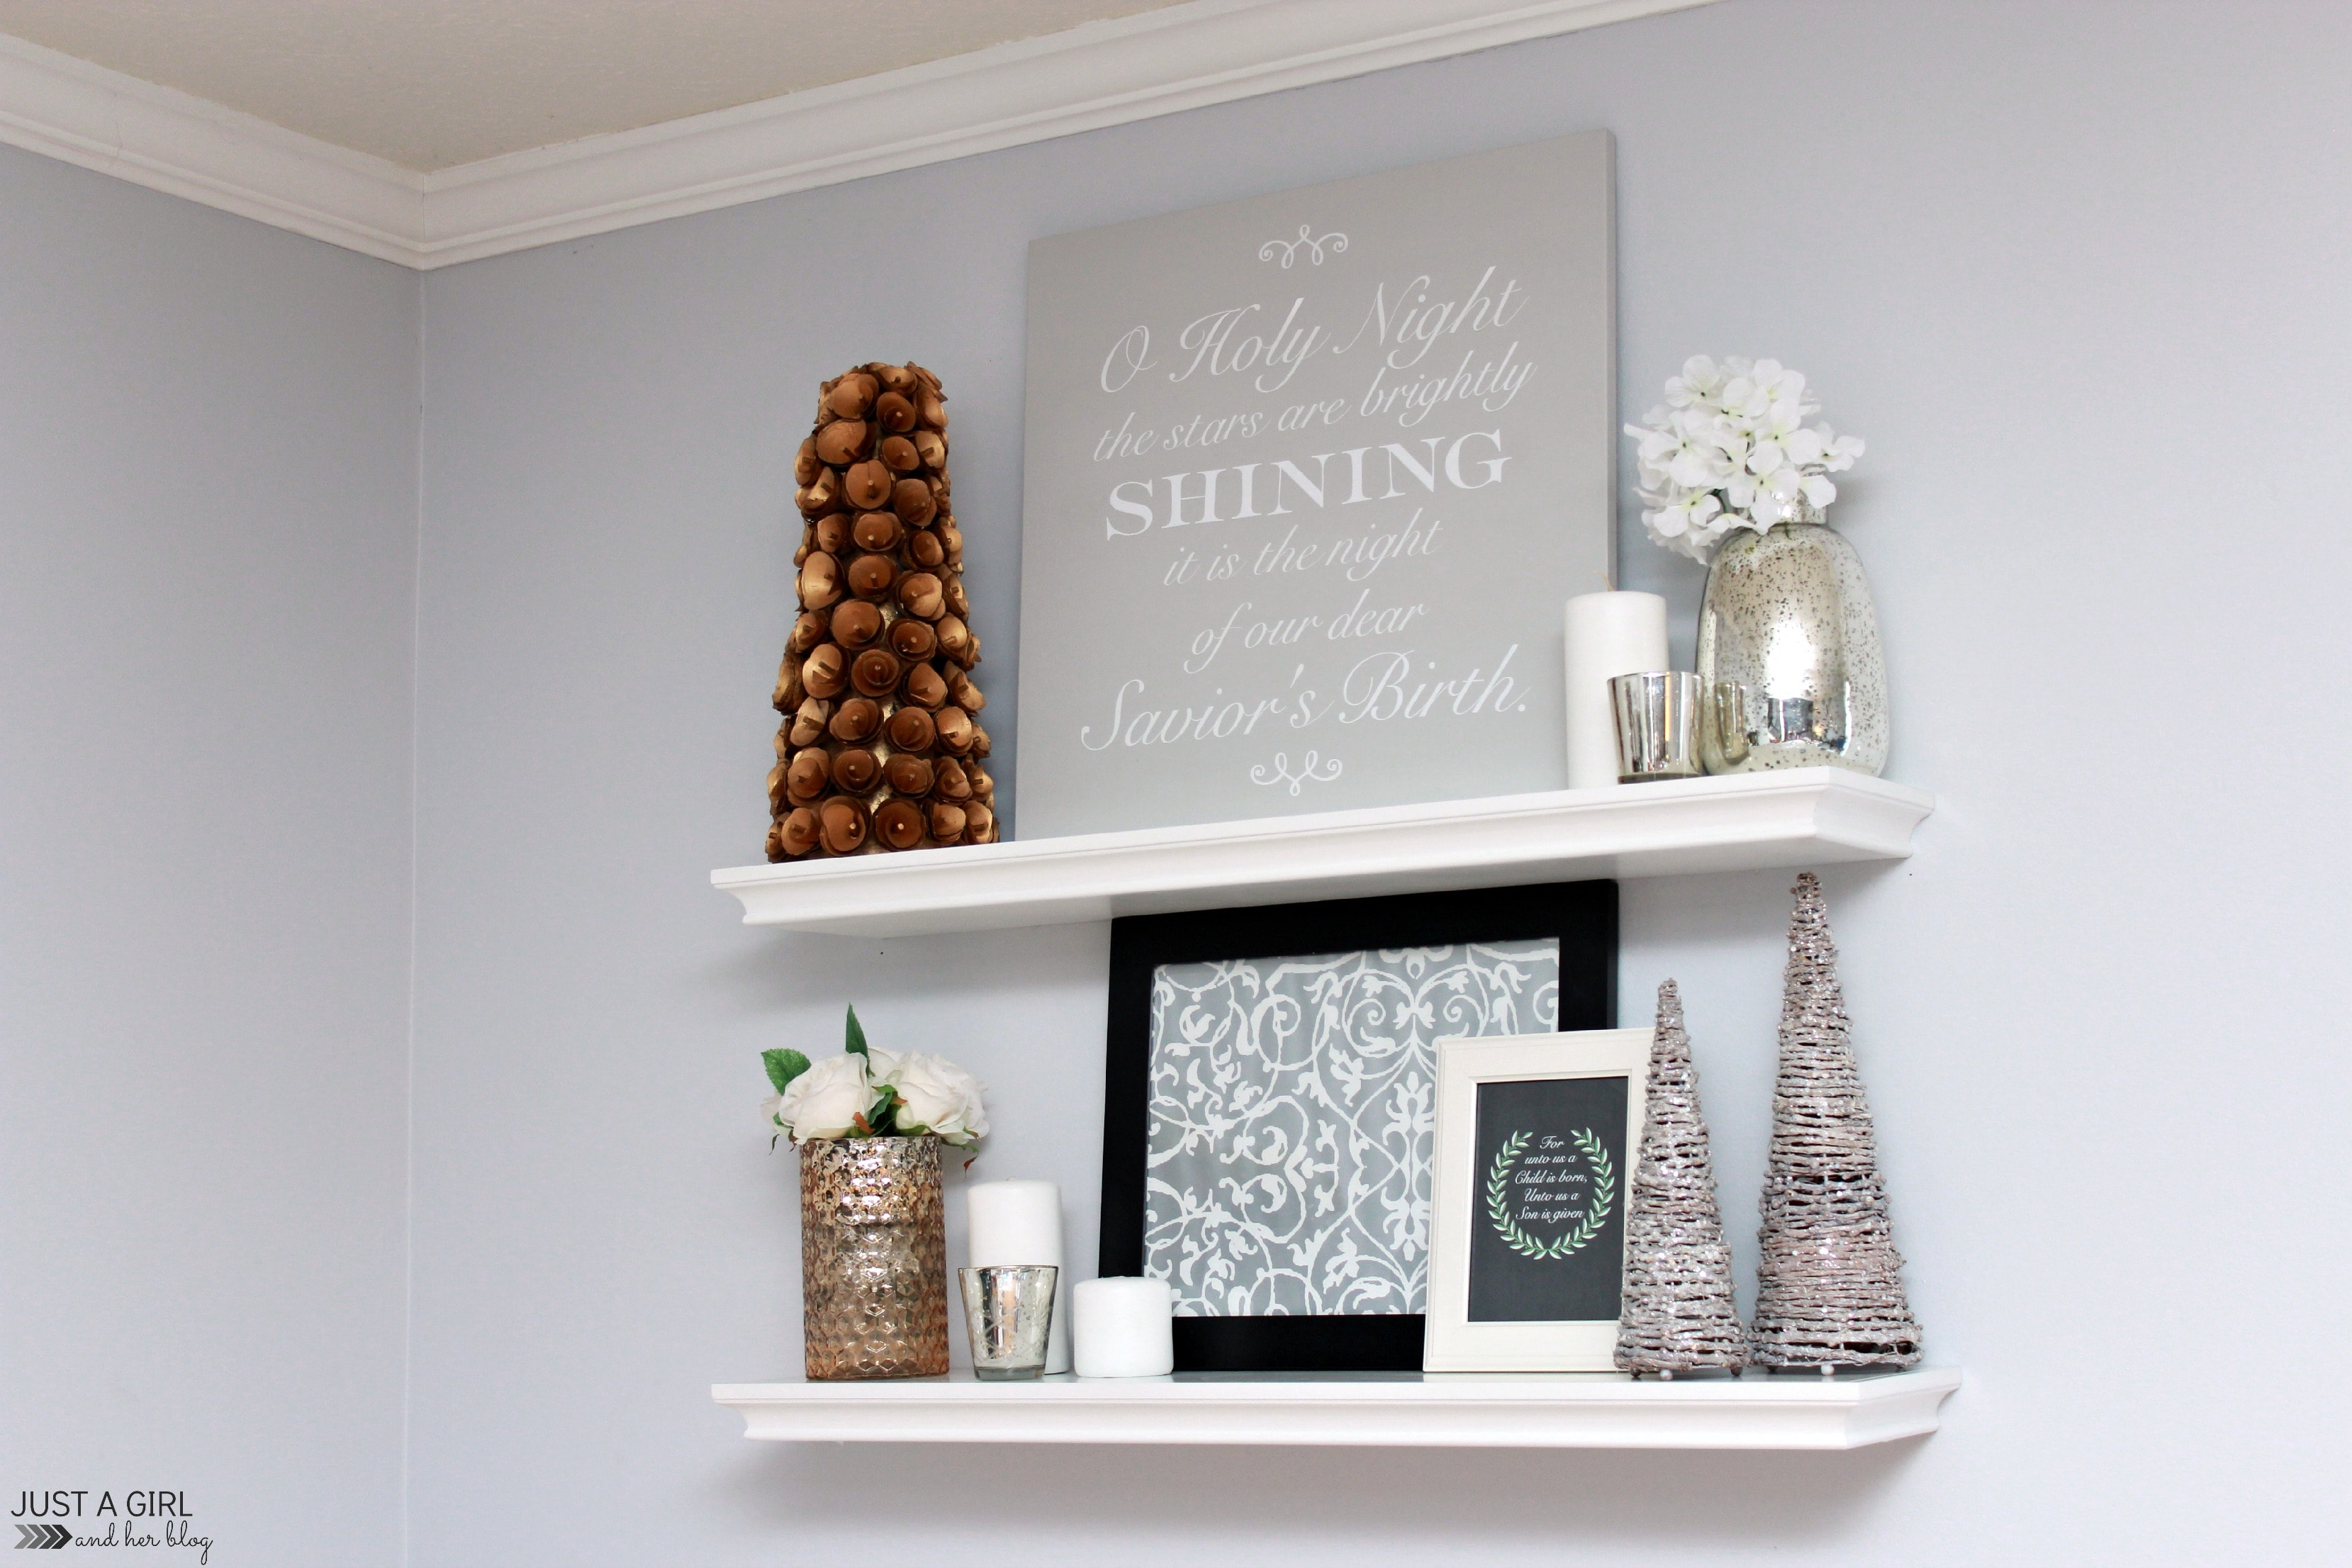 A DIY Sign And Christmas Shelf Decor